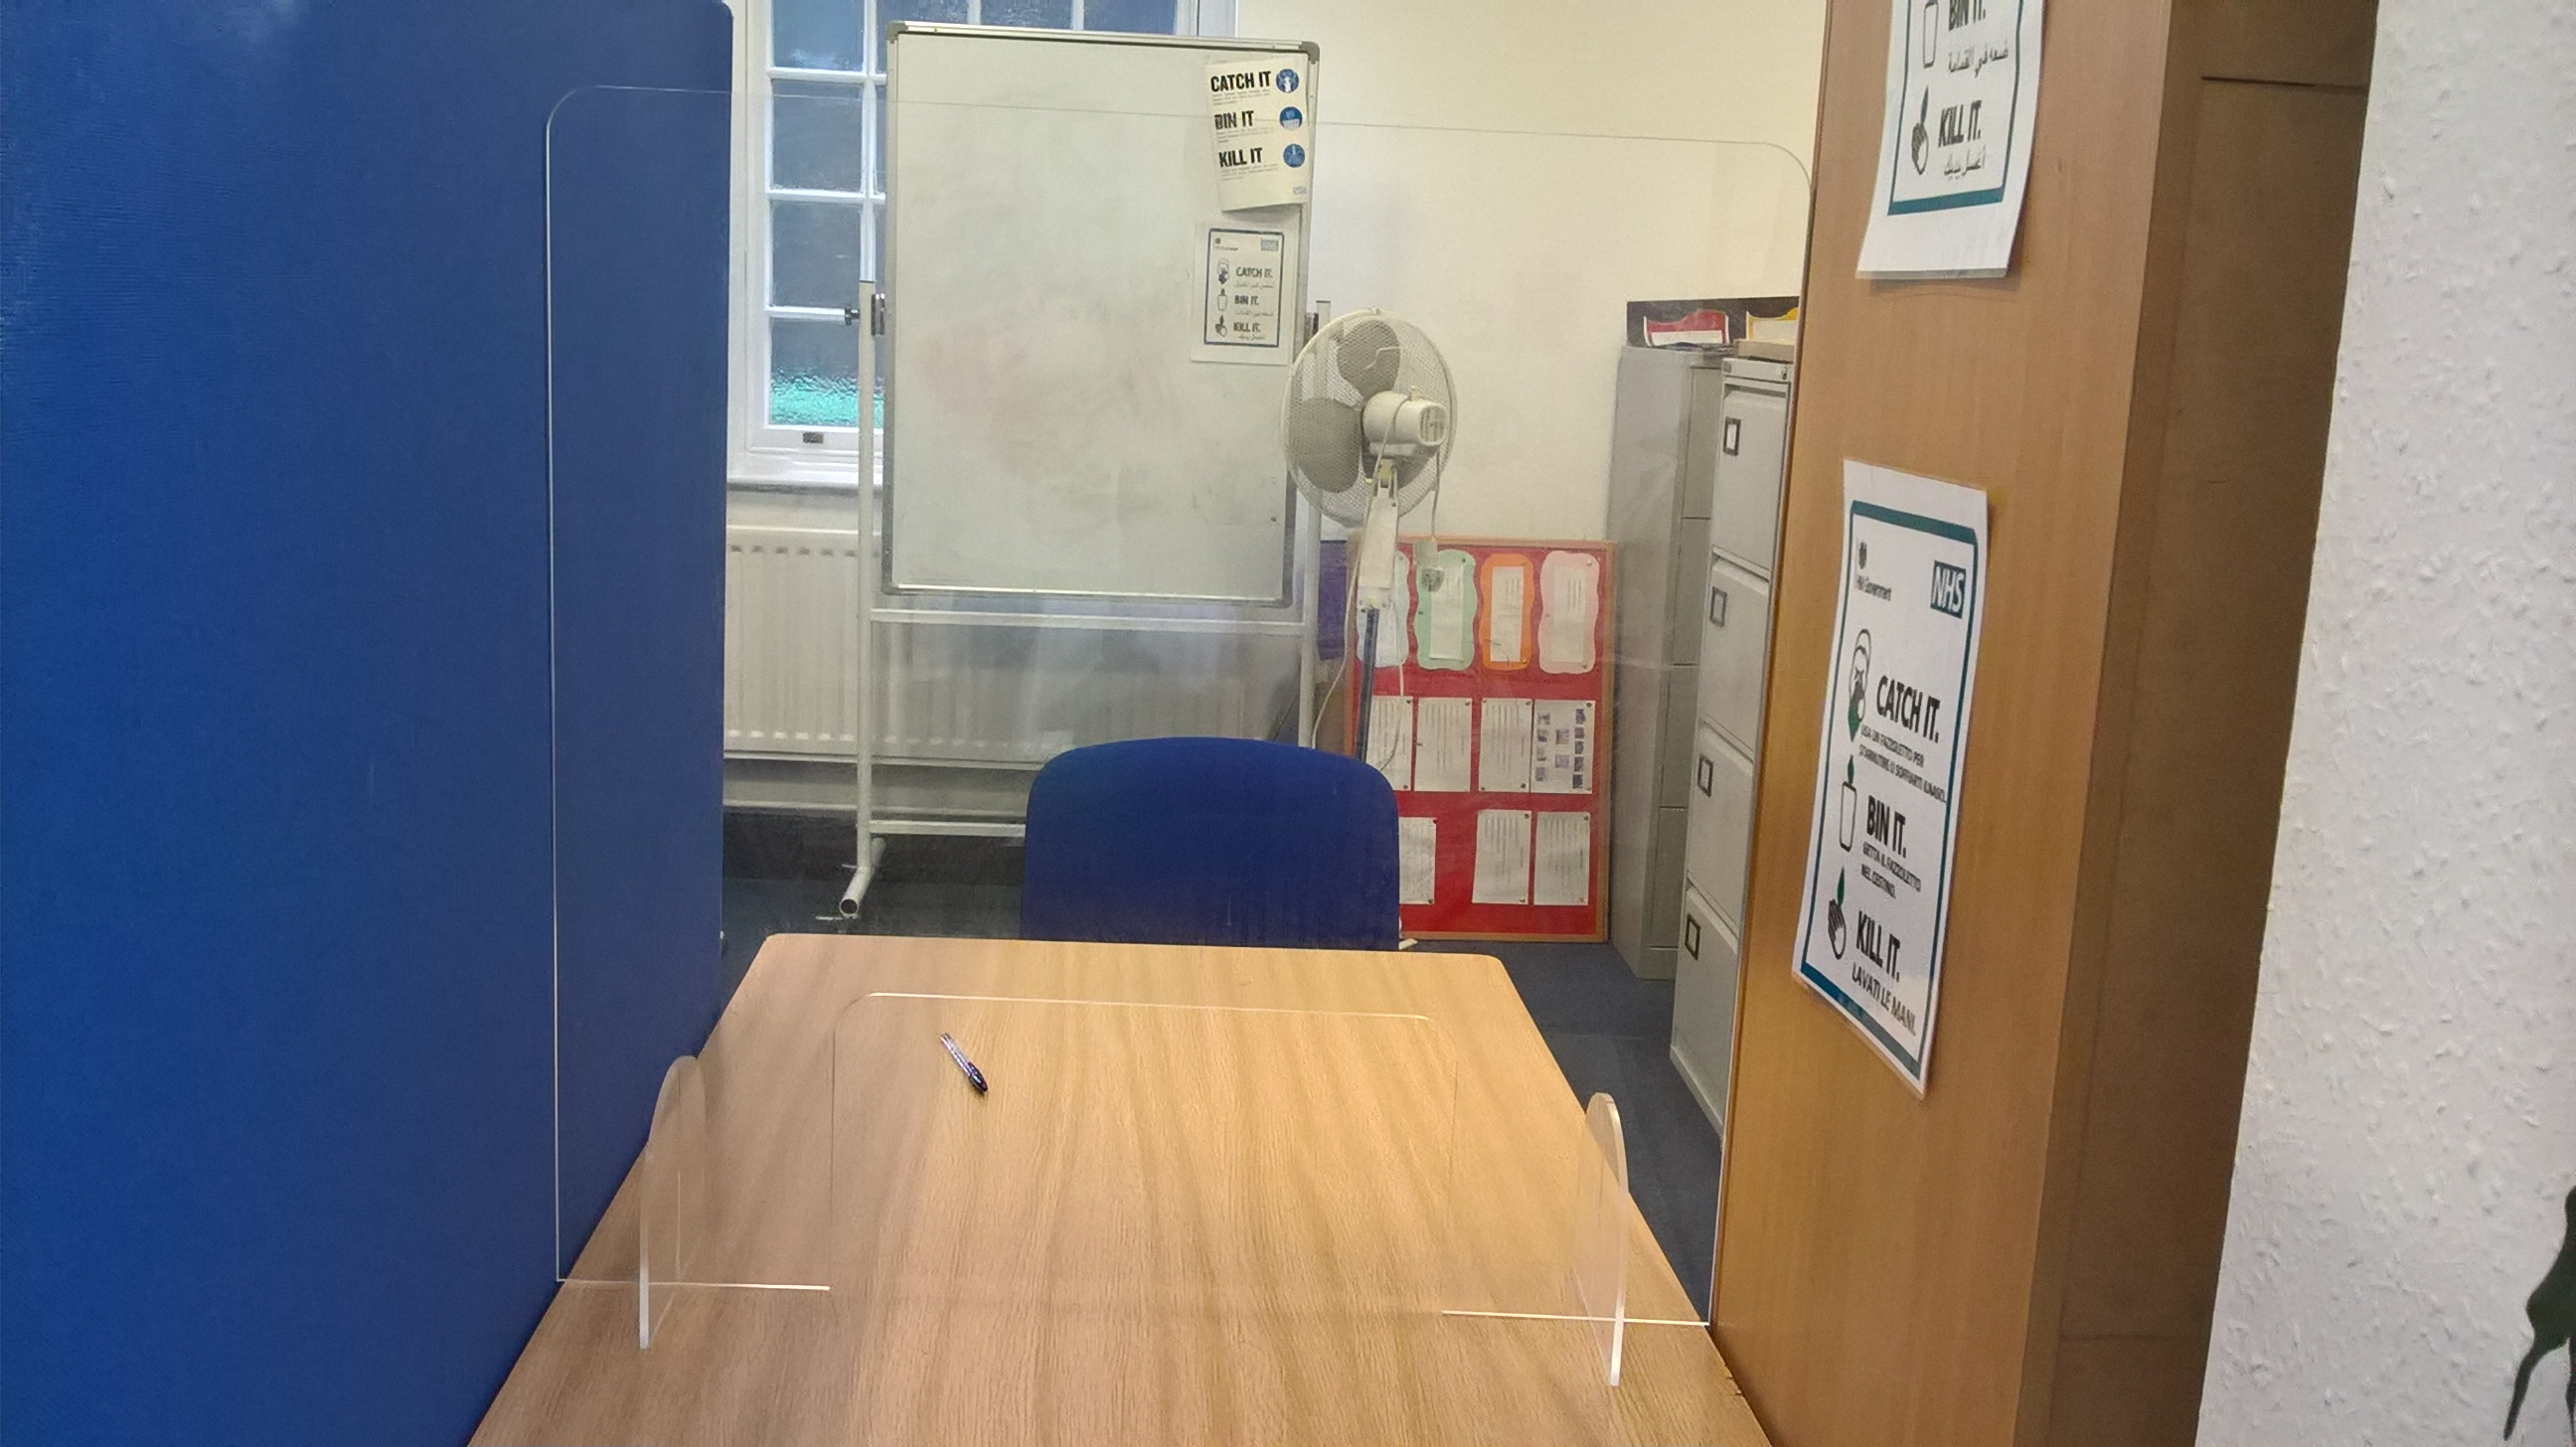 An image of desks at brushstrokes charity centre with PPE